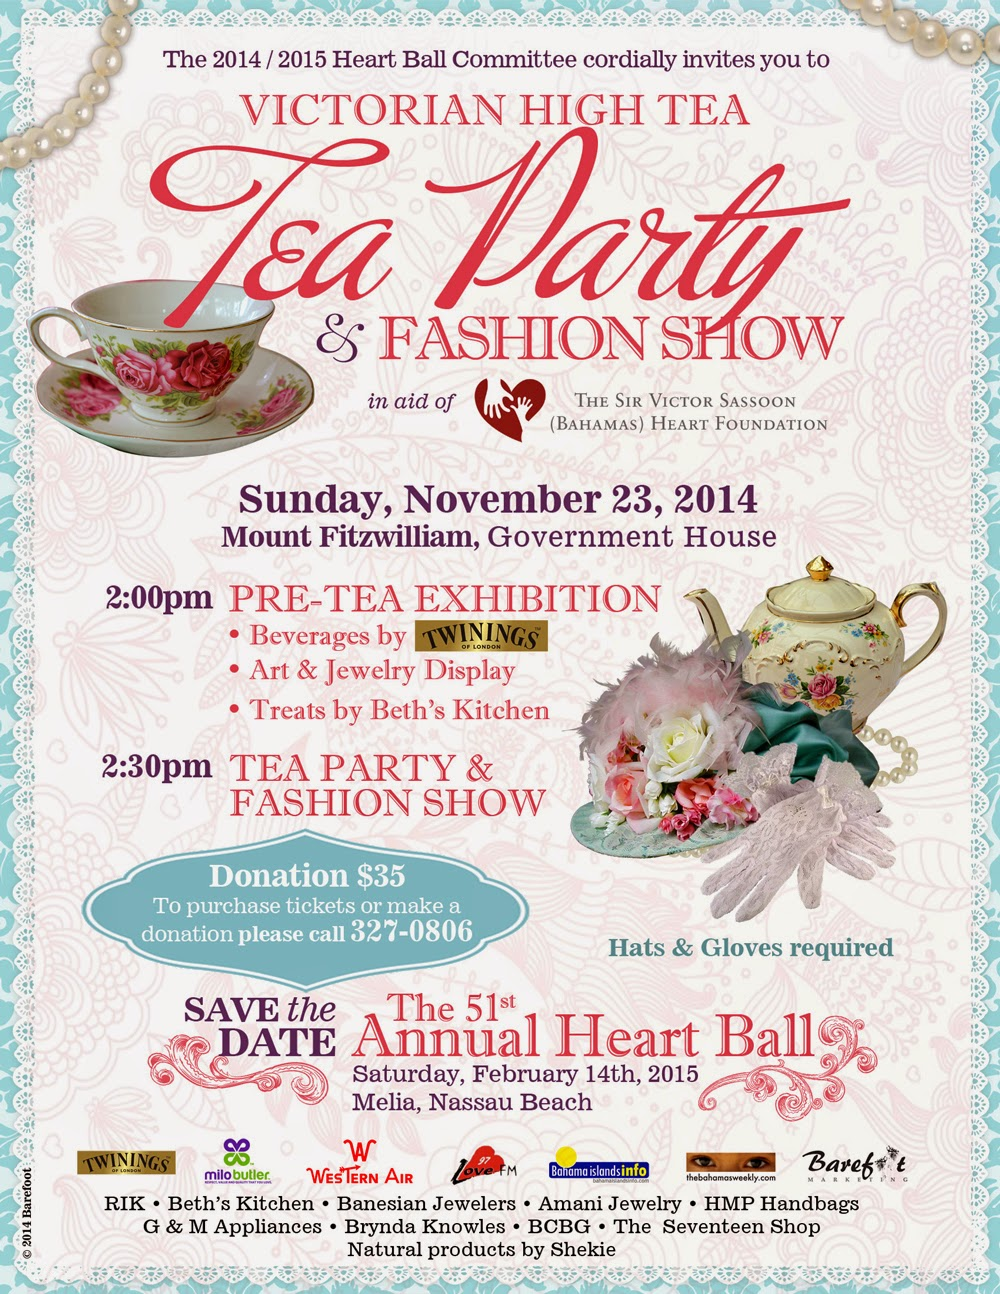 Native Stew :: Bahamas News: Heart Ball Committee\'s Tea Party ...